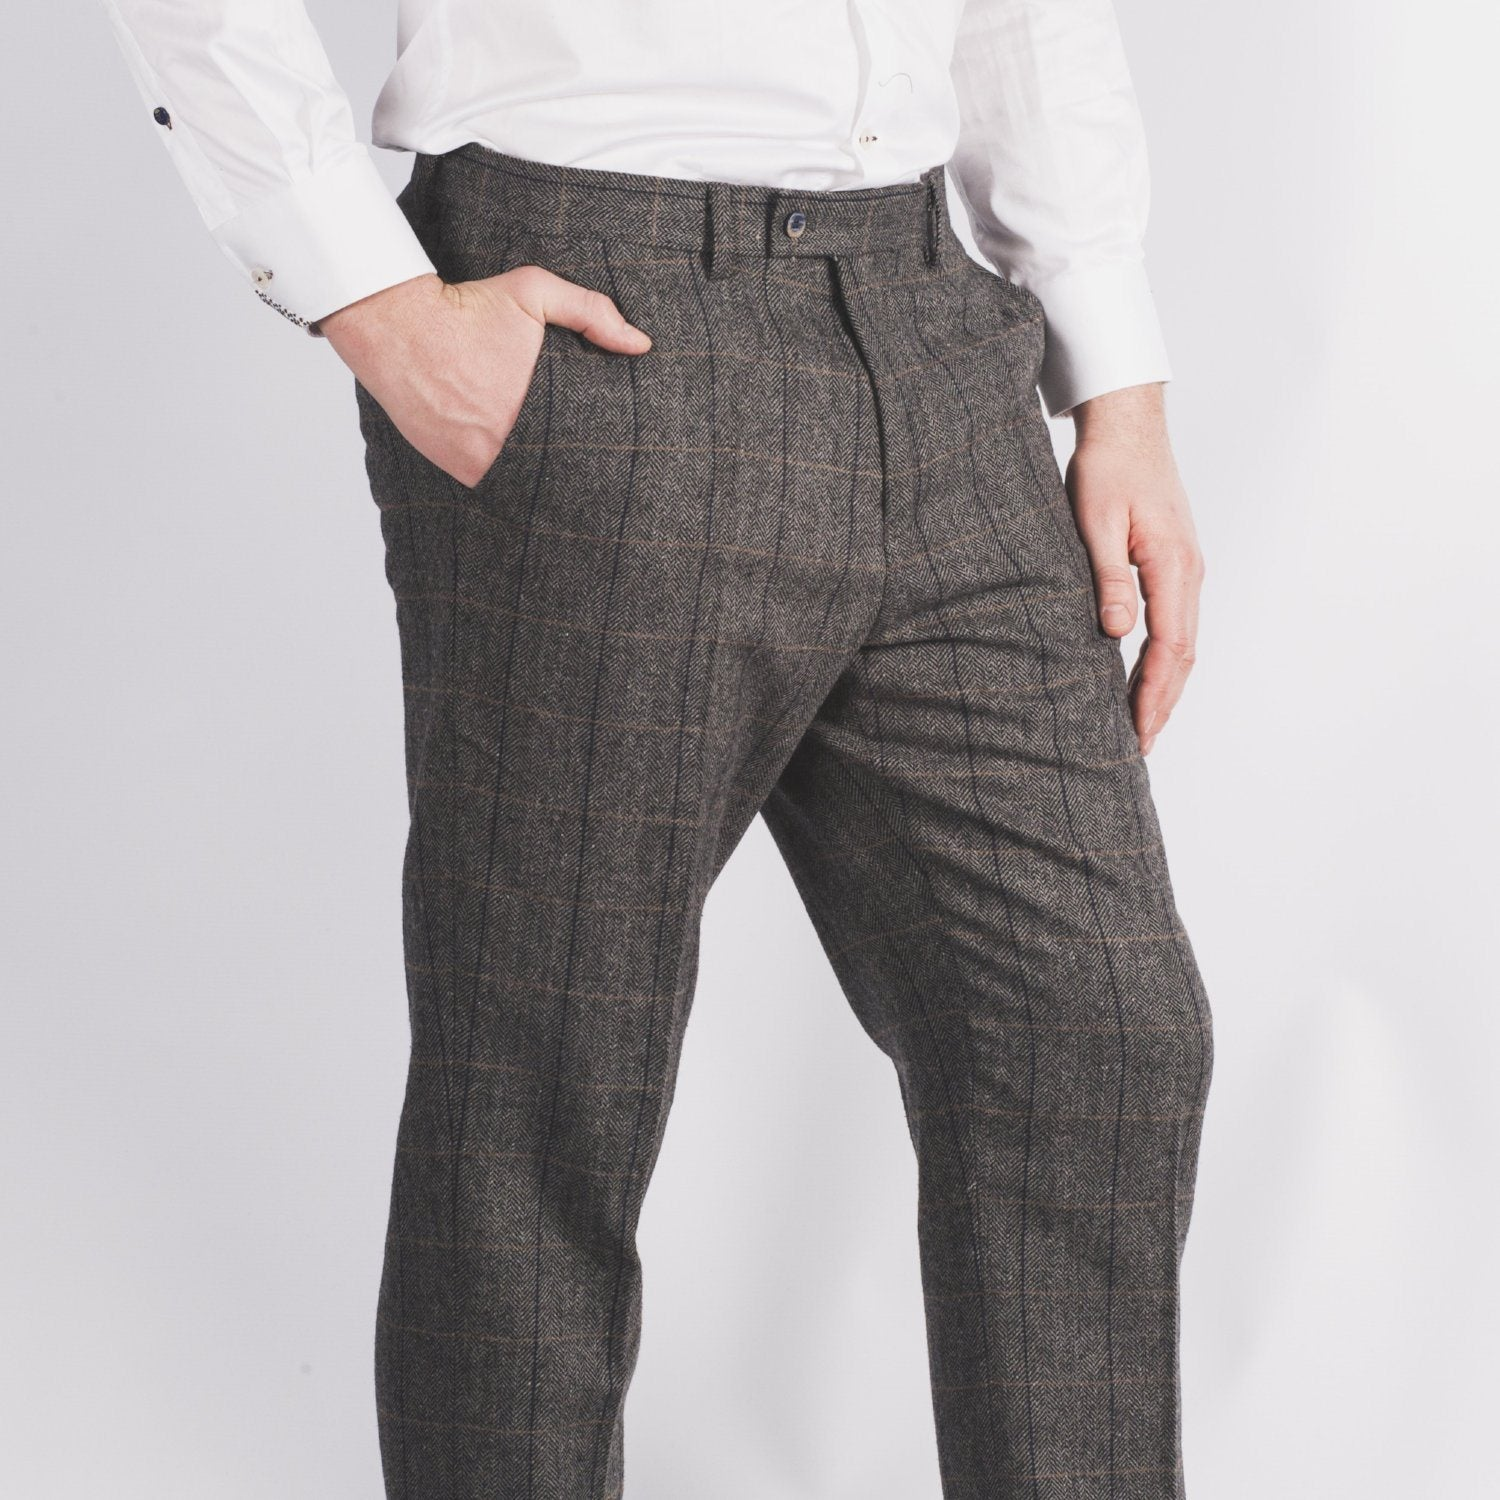 Grey Tweed Trousers - Leonard Silver